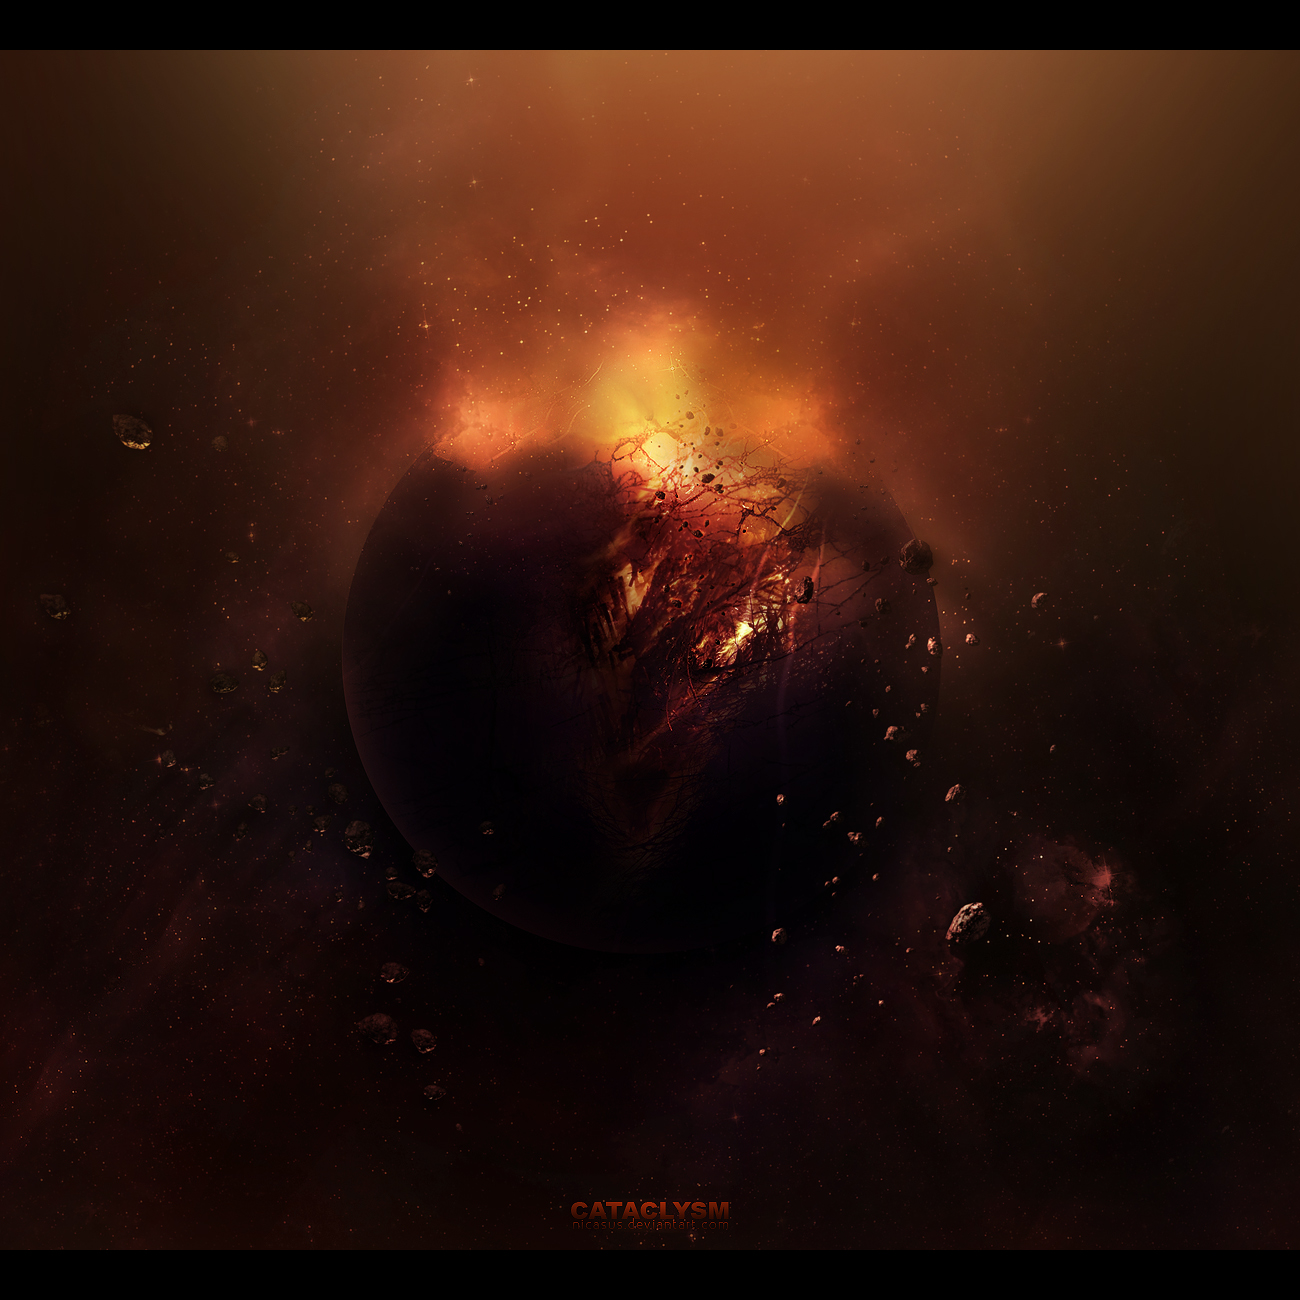 Cataclysm by Nicasus